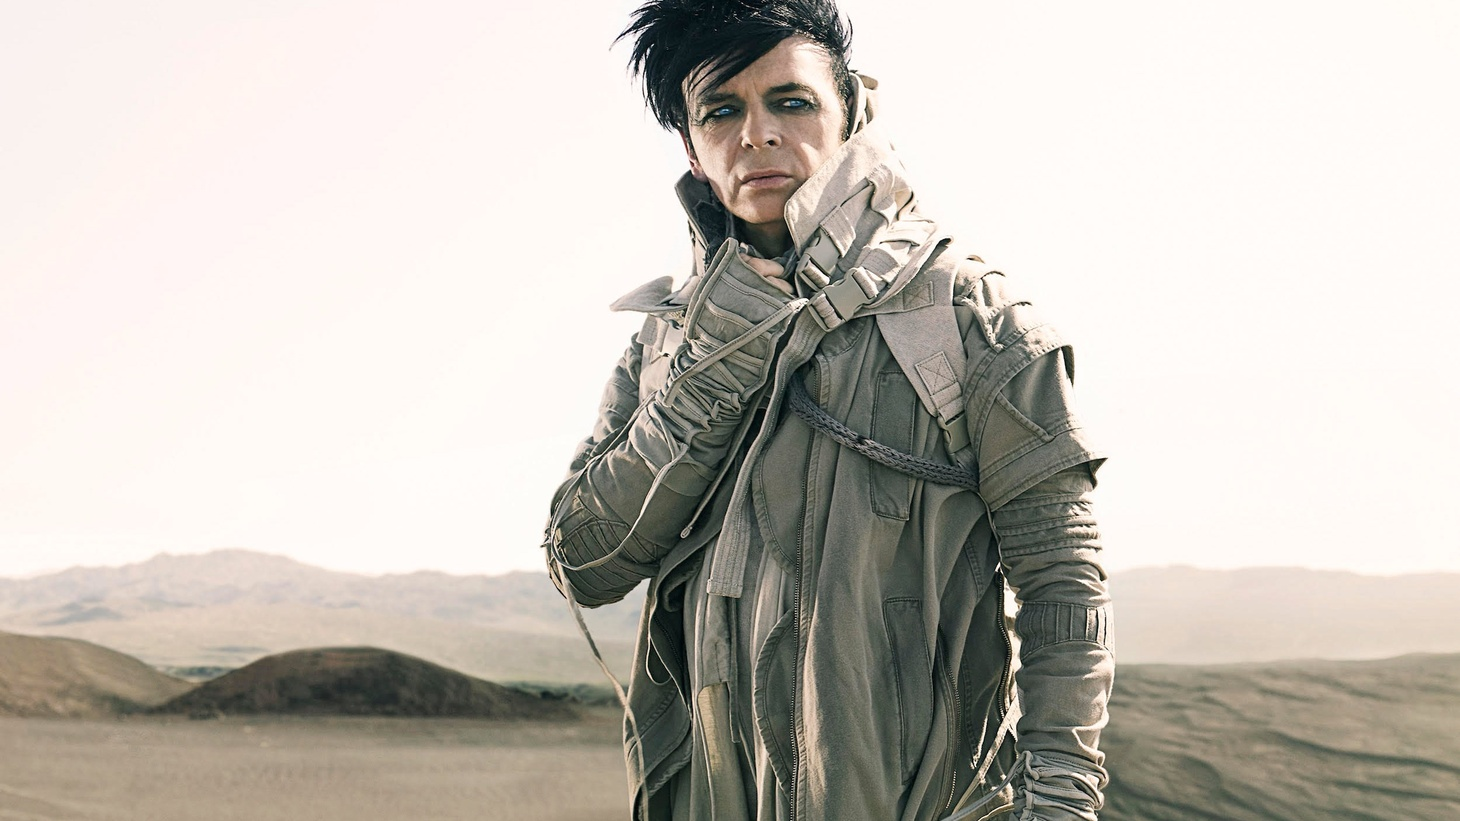 Gary Numan digs into what may be the not too distant post-global-warming future where we are left hungry, thirsty and without technology in an apocalyptic arid landscape.